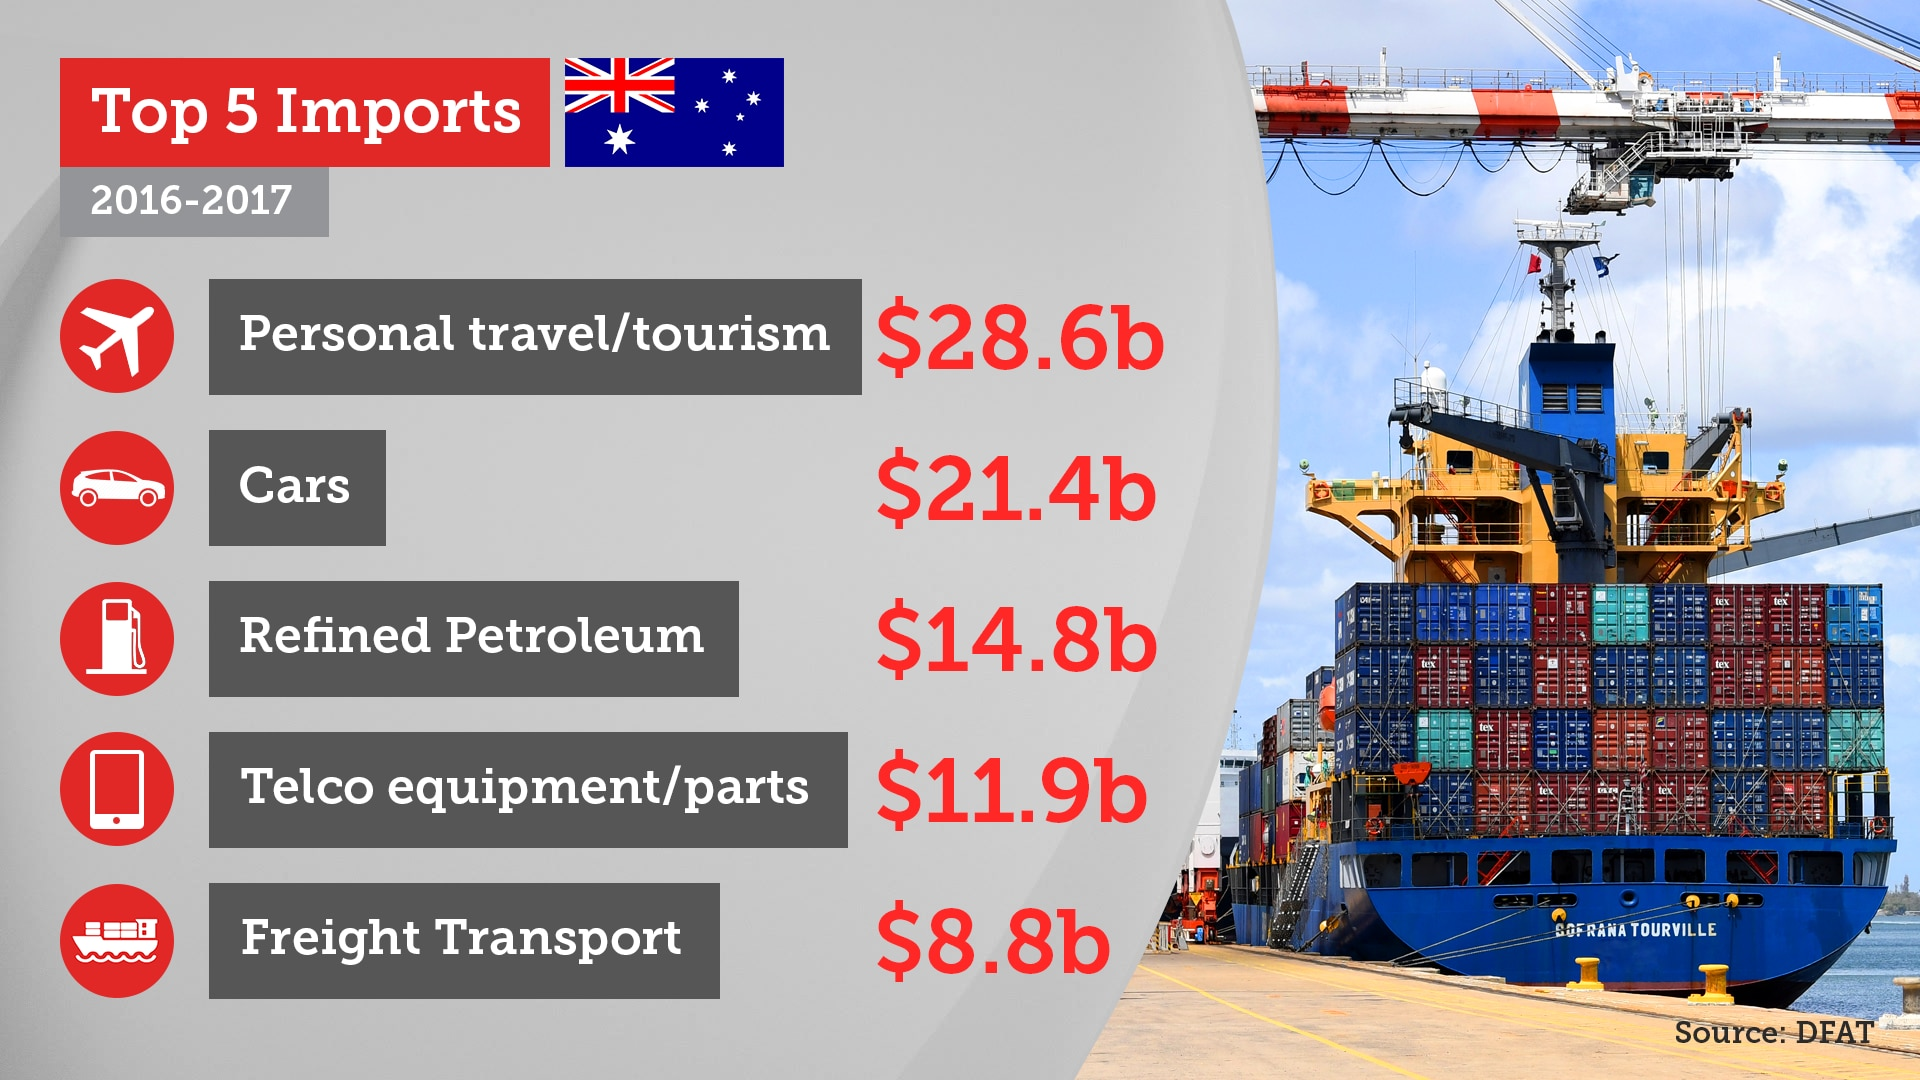 Australia's trade explained: Top imports, exports and